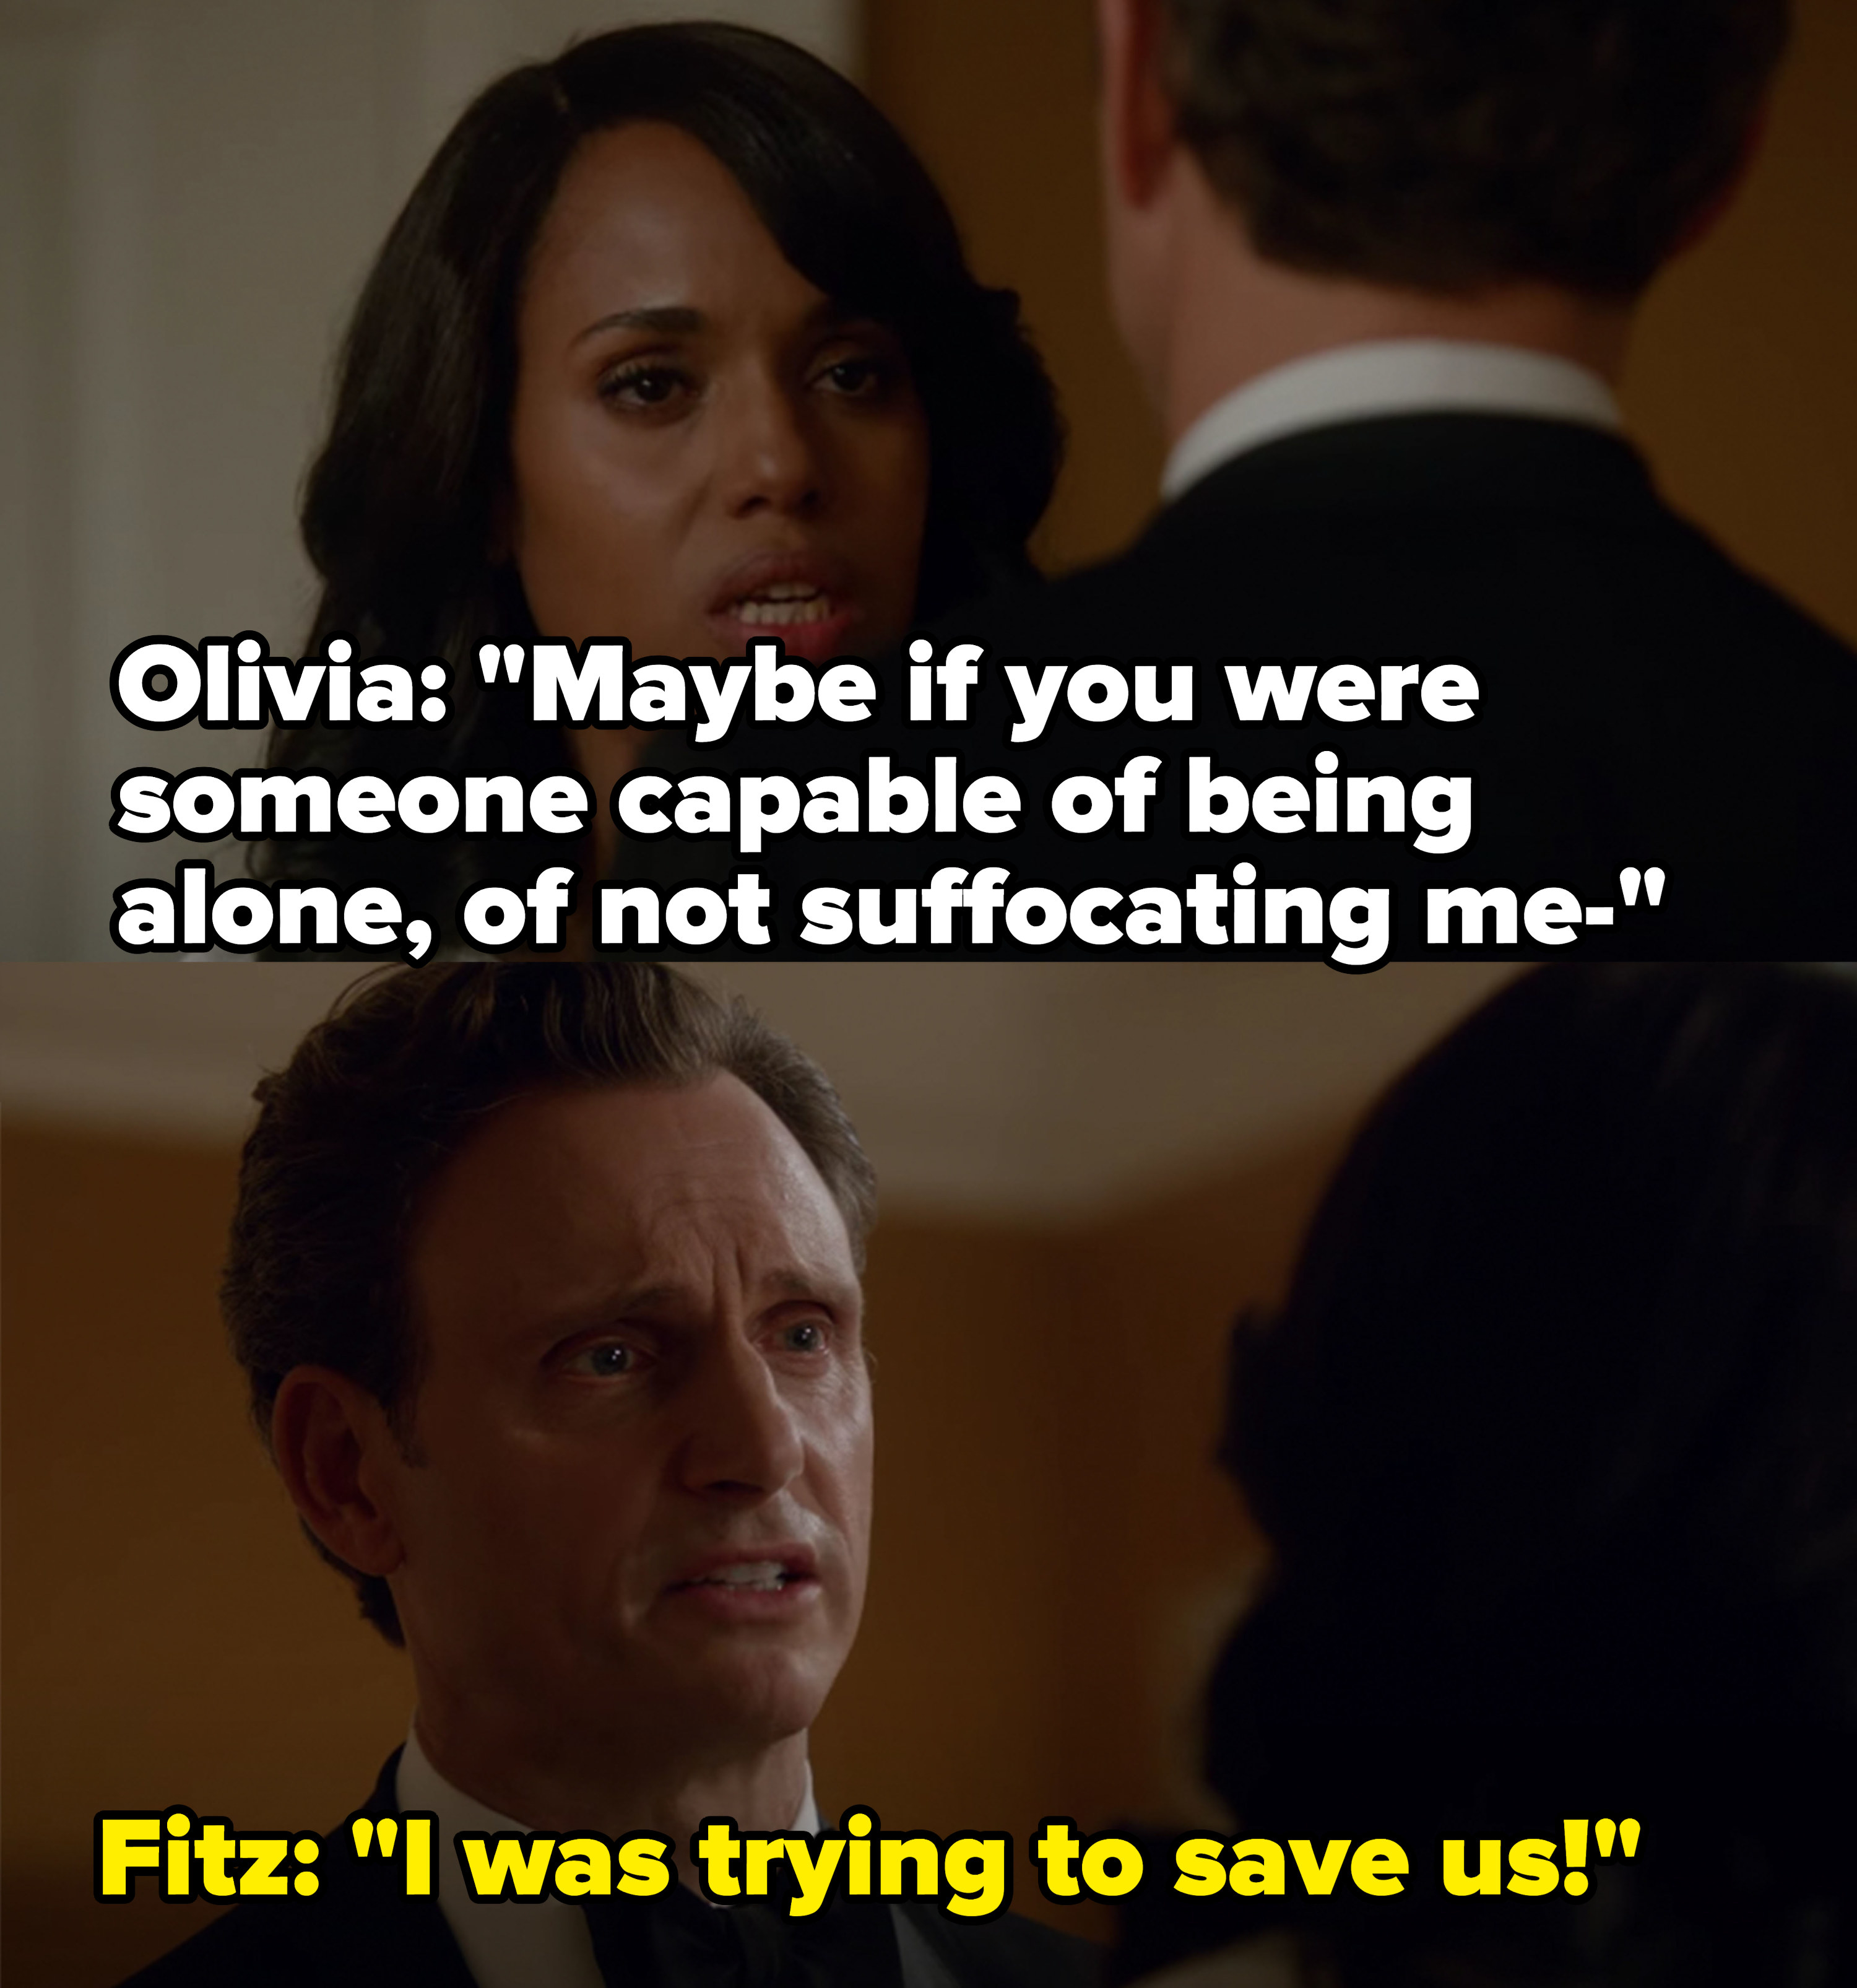 Olivia says Fitz is suffocating her, Fitz says he was only trying to save them